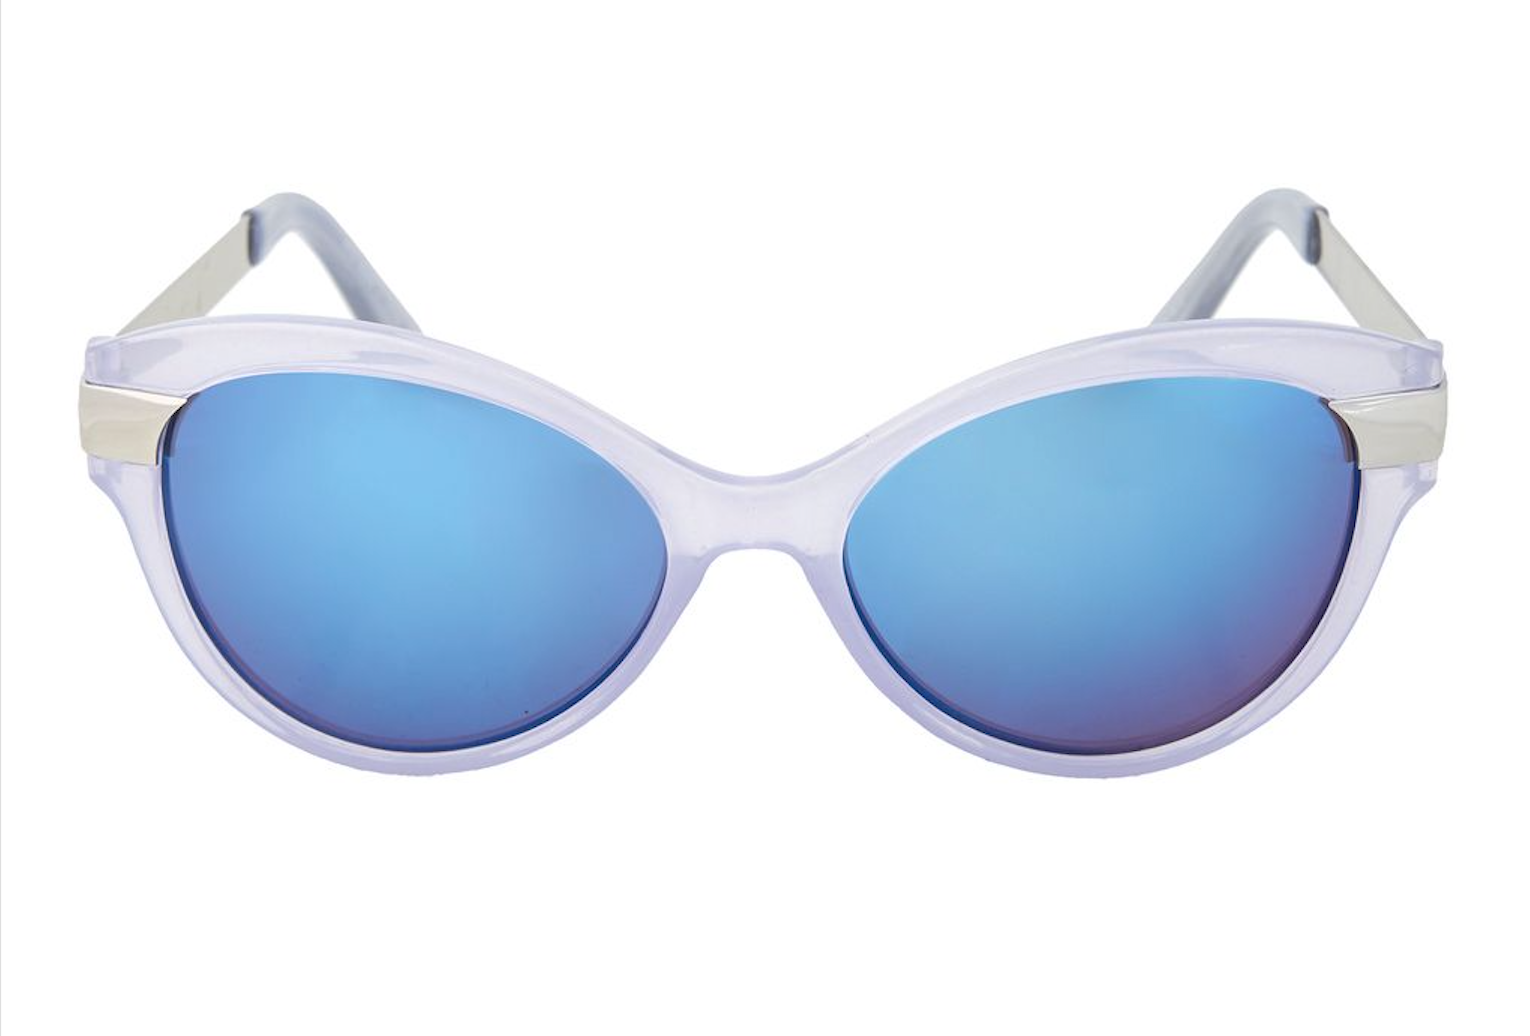 Topshop cateye sunglasses